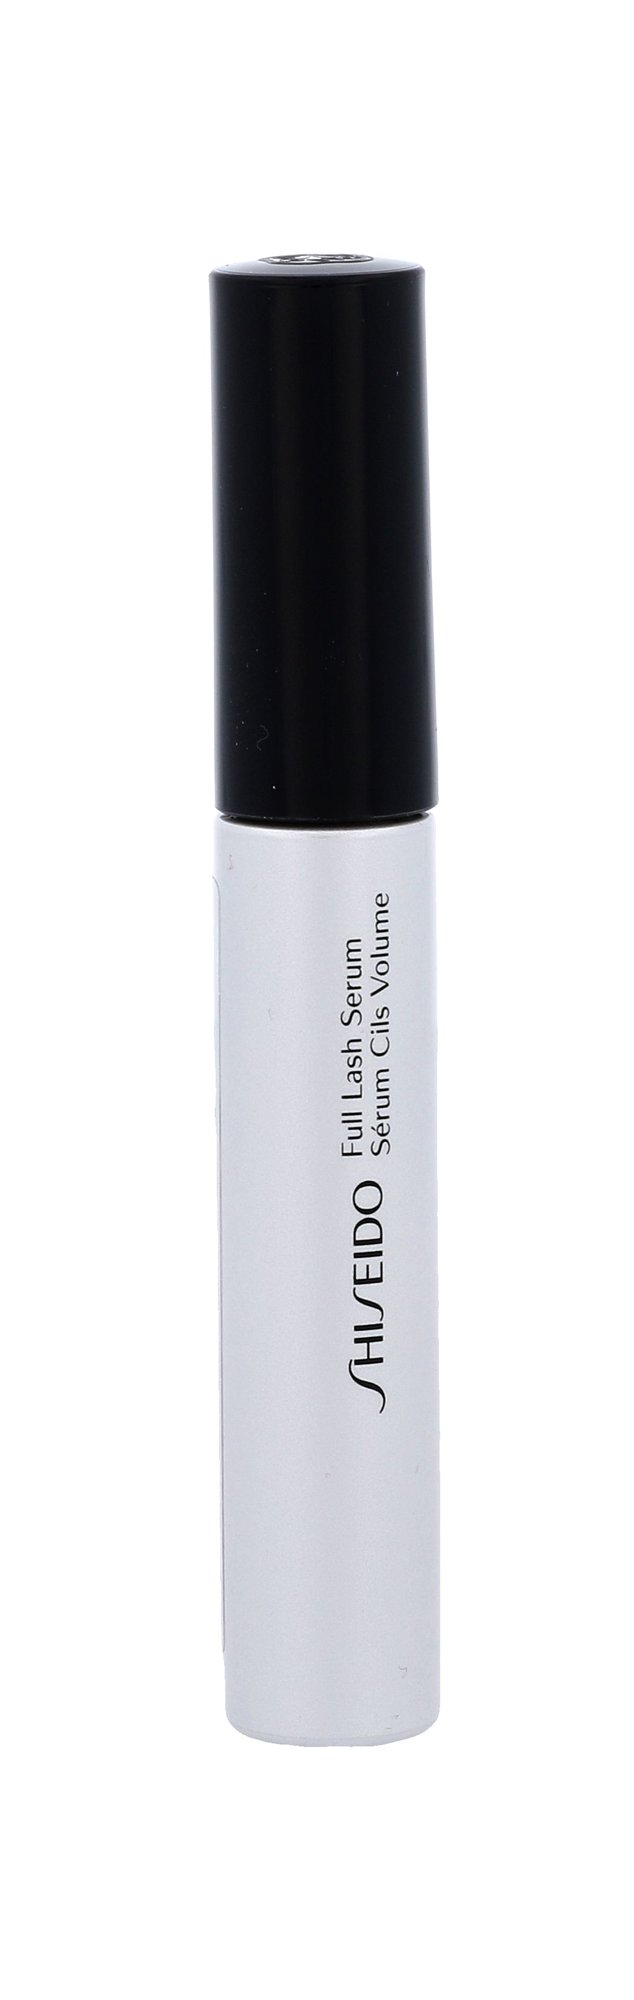 Shiseido Full Lash Cosmetic 6ml